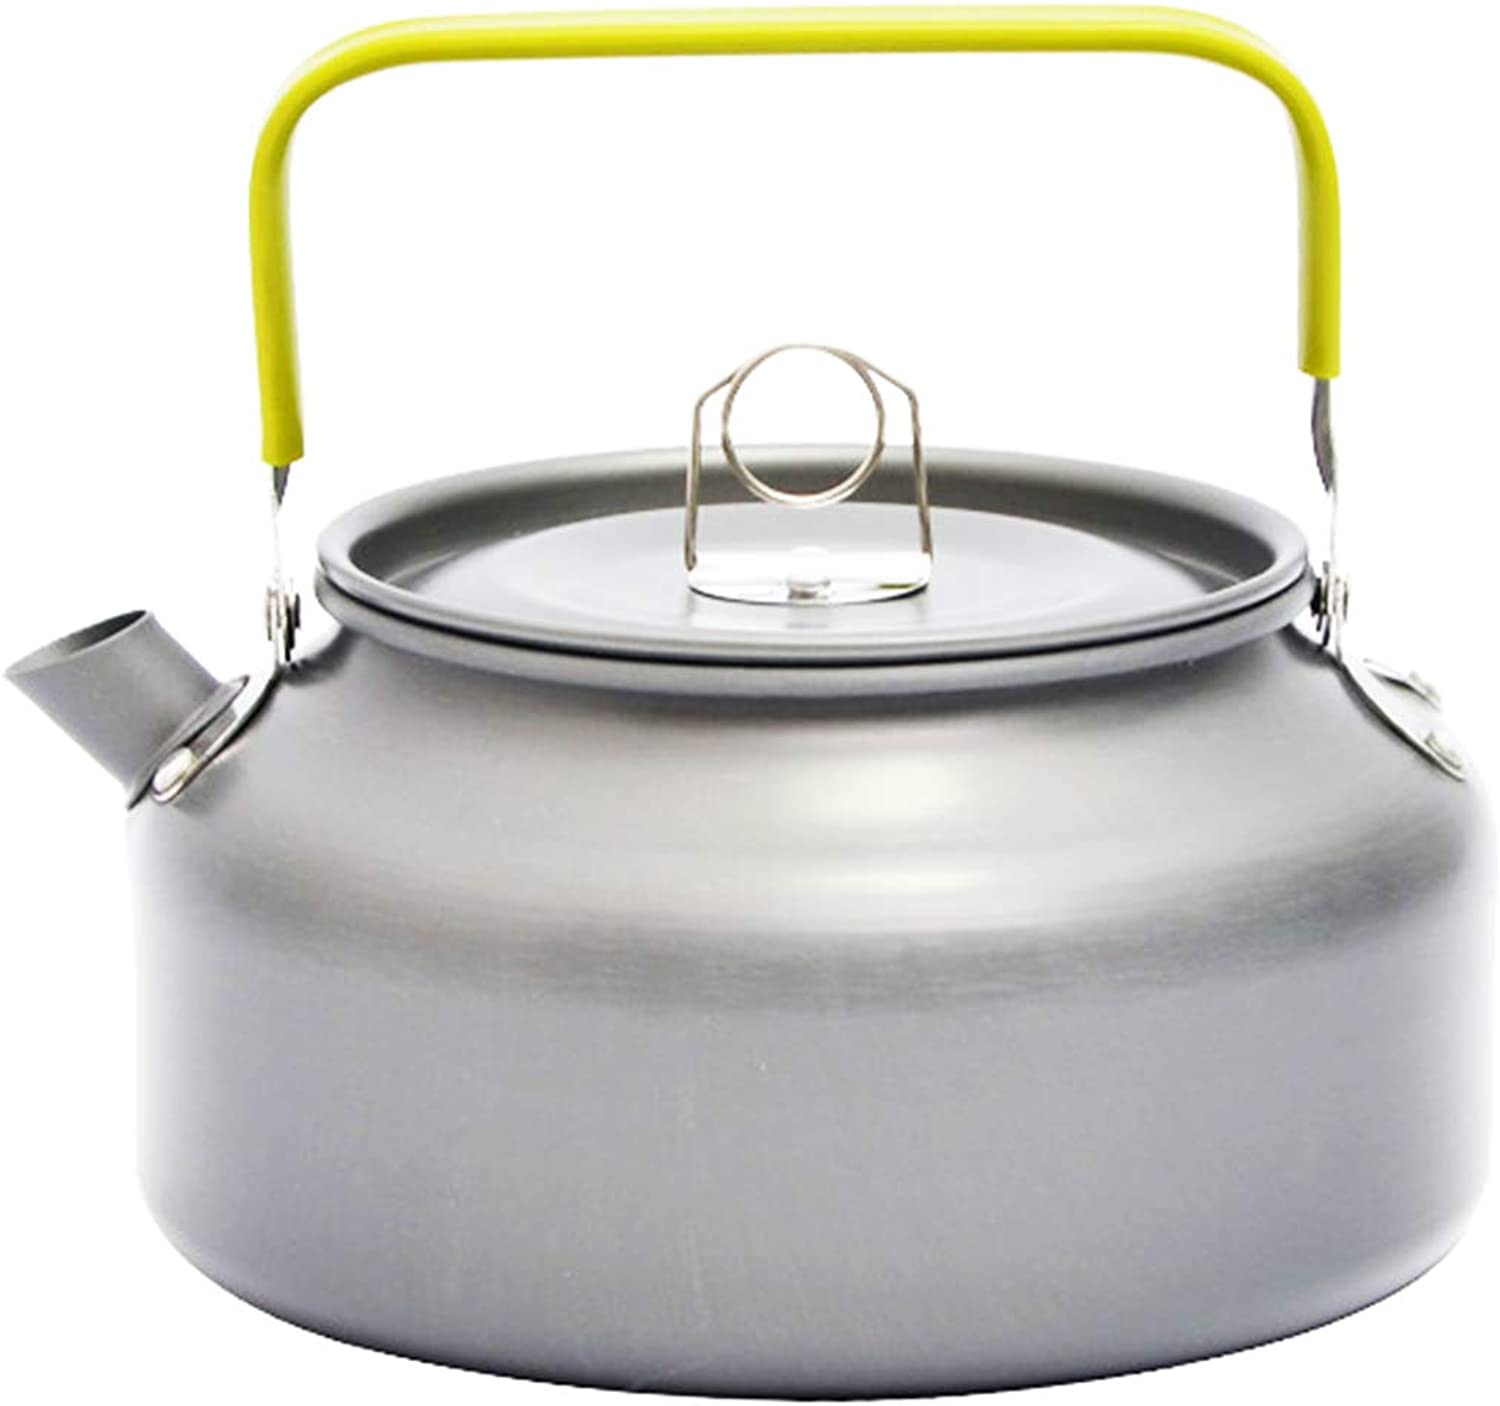 Camping Kettle Camp Tea Kettle Camping Coffee Pot Aluminum Outdoor Hiking Kettle